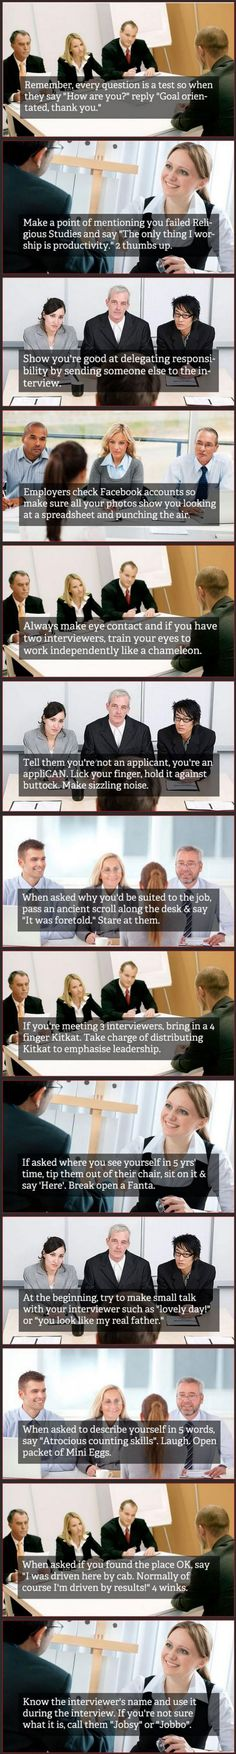 Job Interview Tips | DailyFailCenter   Just wow